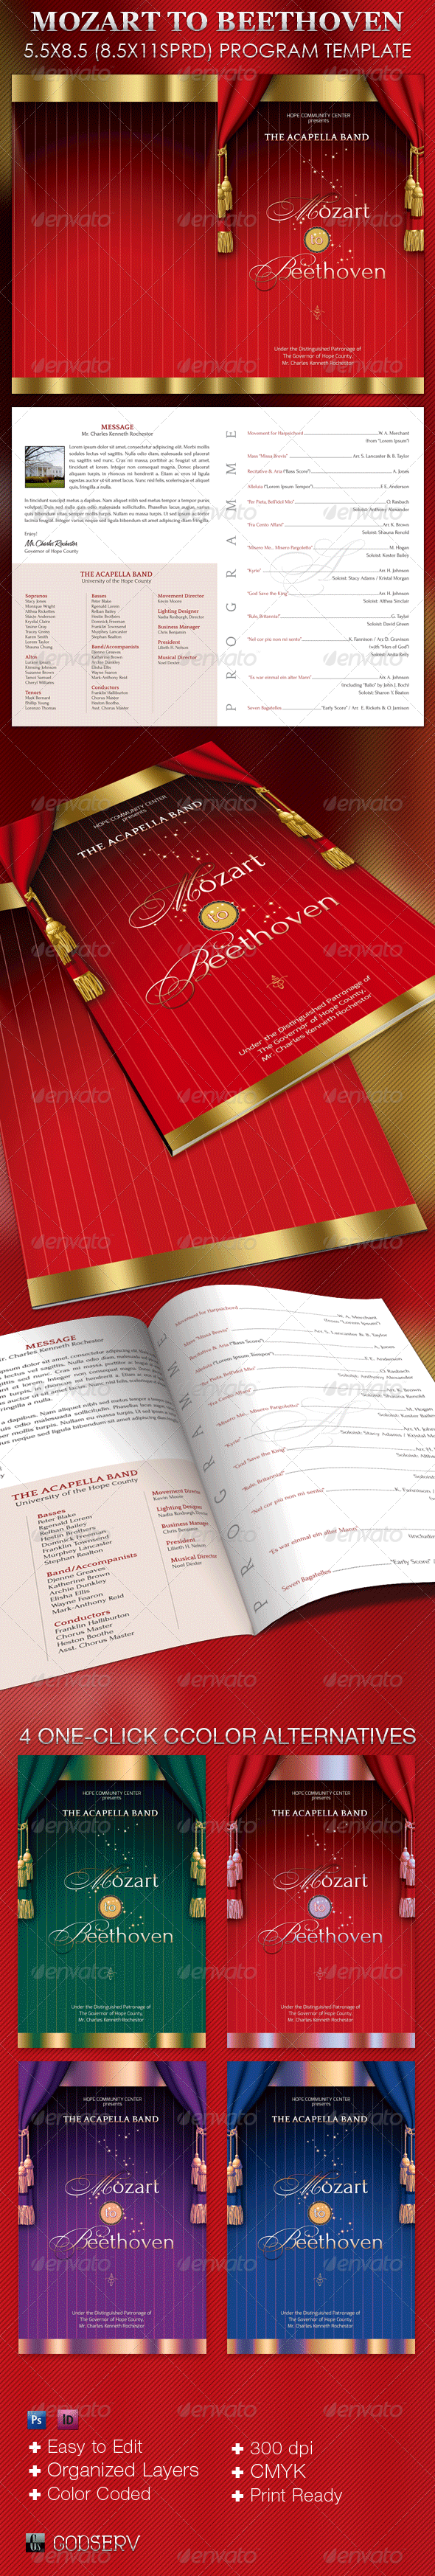 GraphicRiver Mozart to Beethoven Program Template 3767867